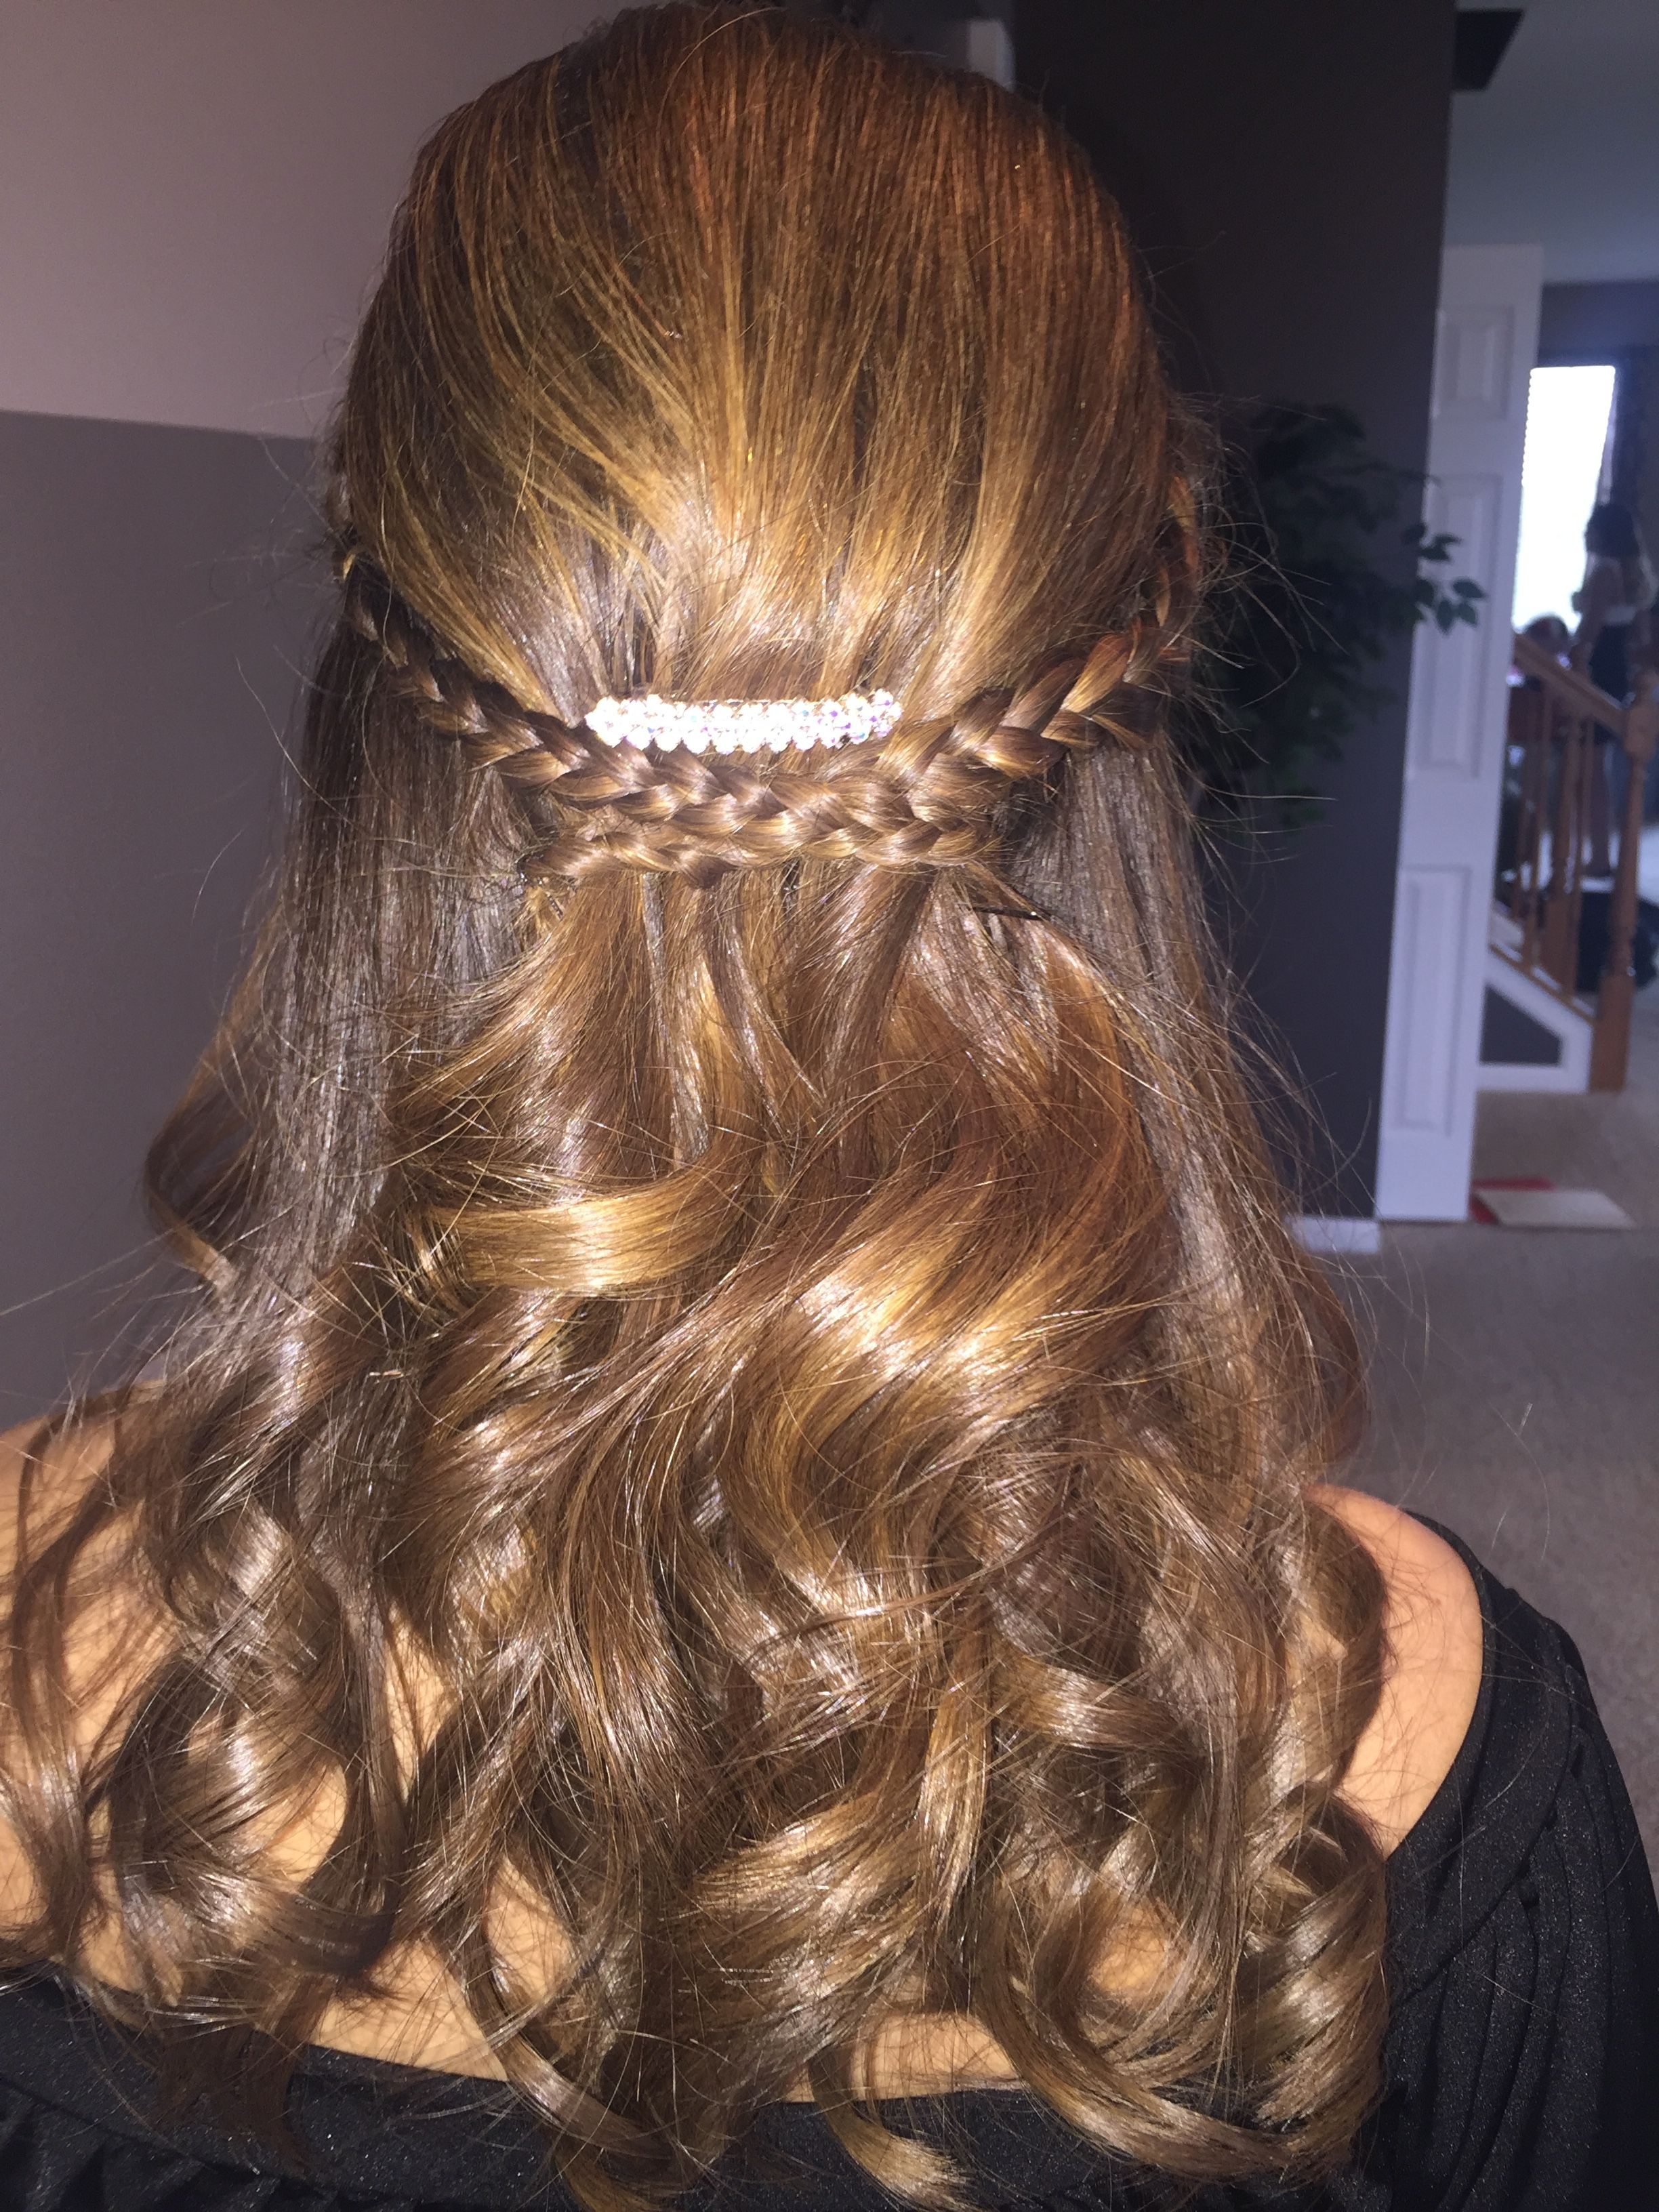 Home ing prom wedding hair Two small braids on the side of the